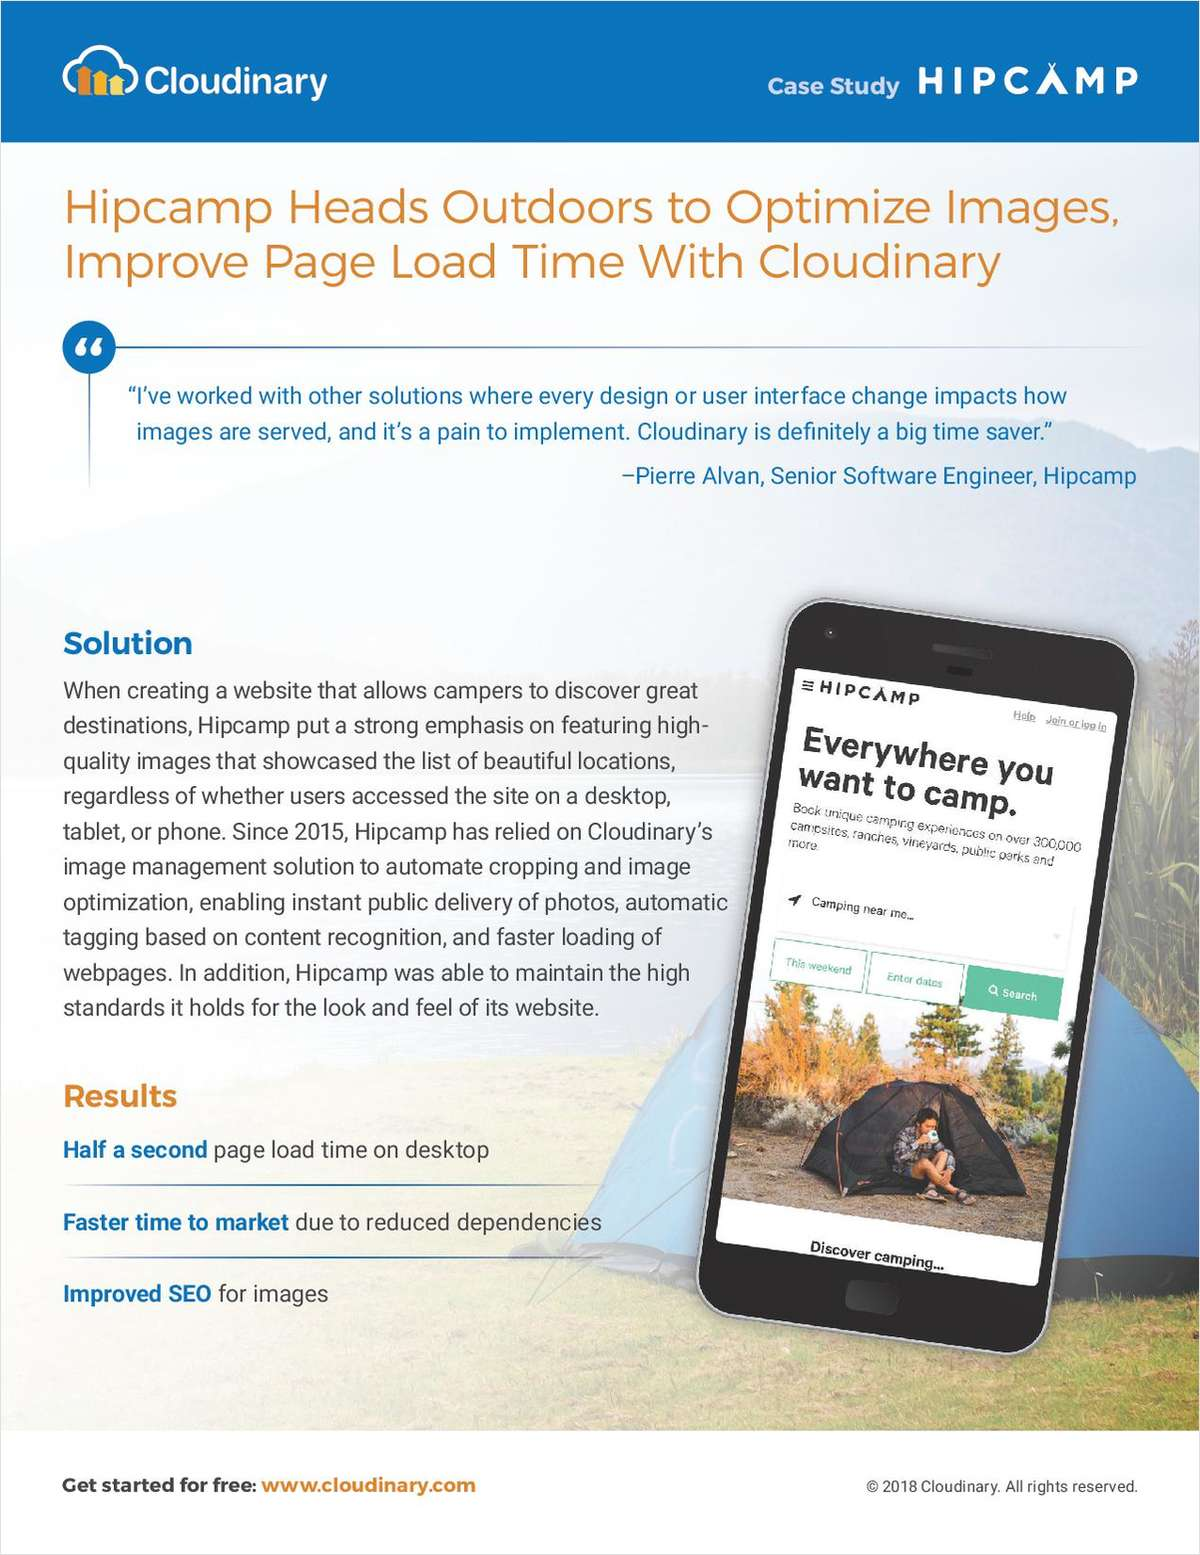 Hipcamp Heads Outdoors to Optimize Images, Improve Page Load Time with Cloudinary